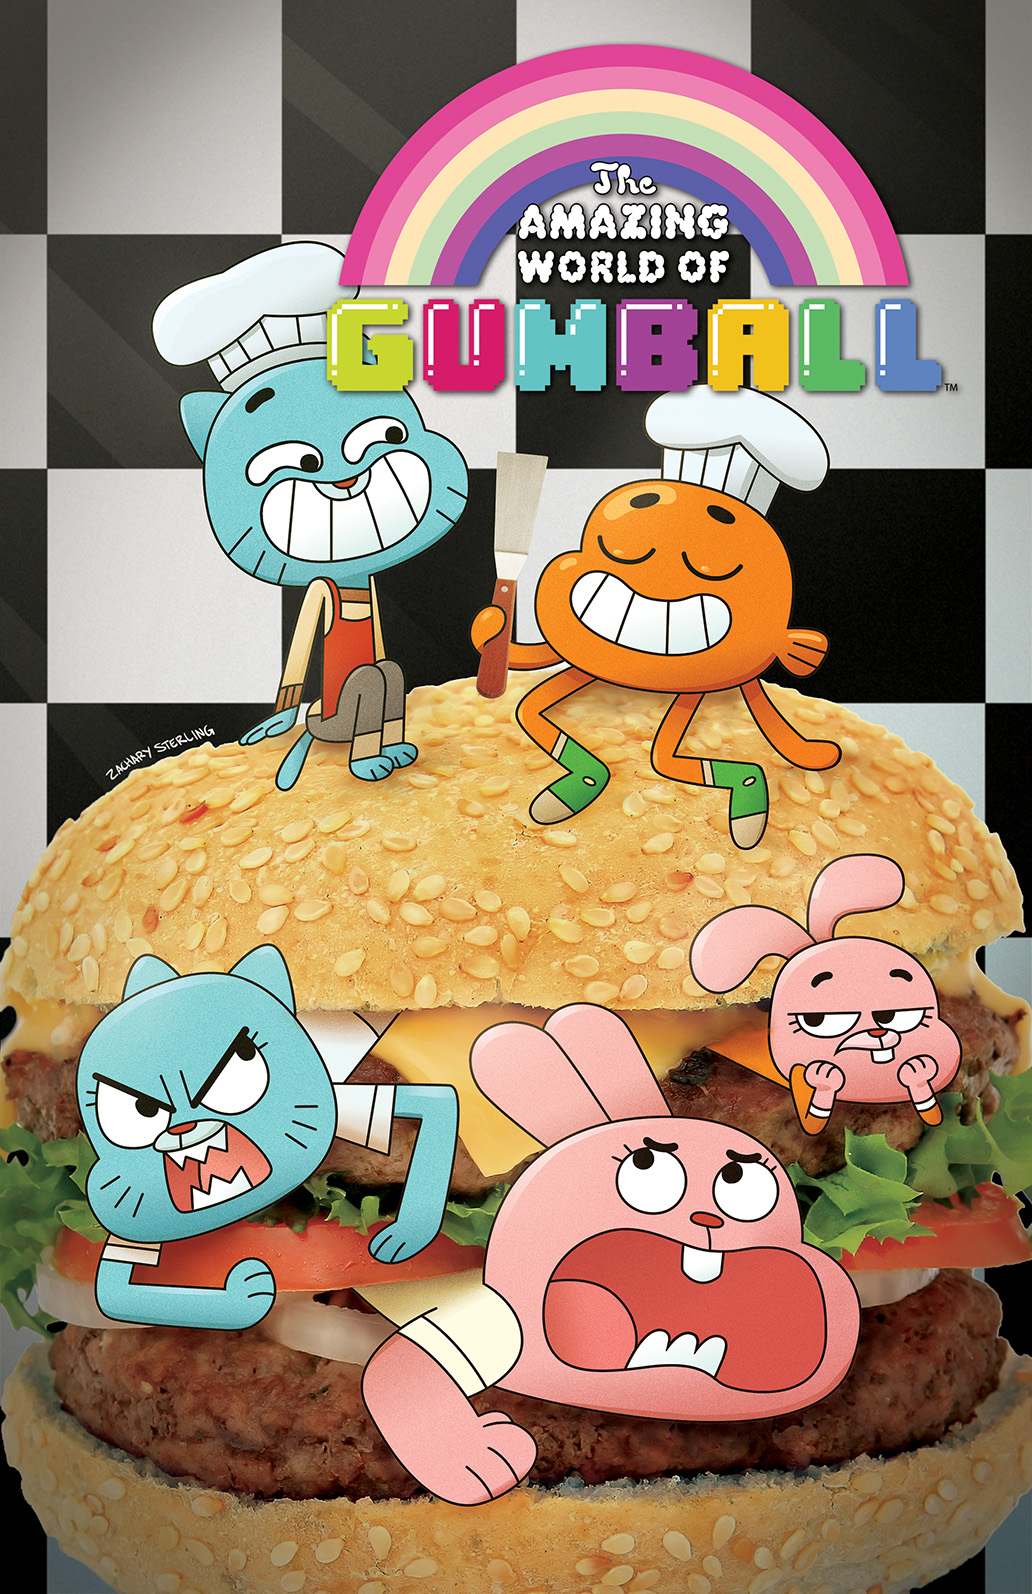 The Amazing World of Gumball #1 Cover B